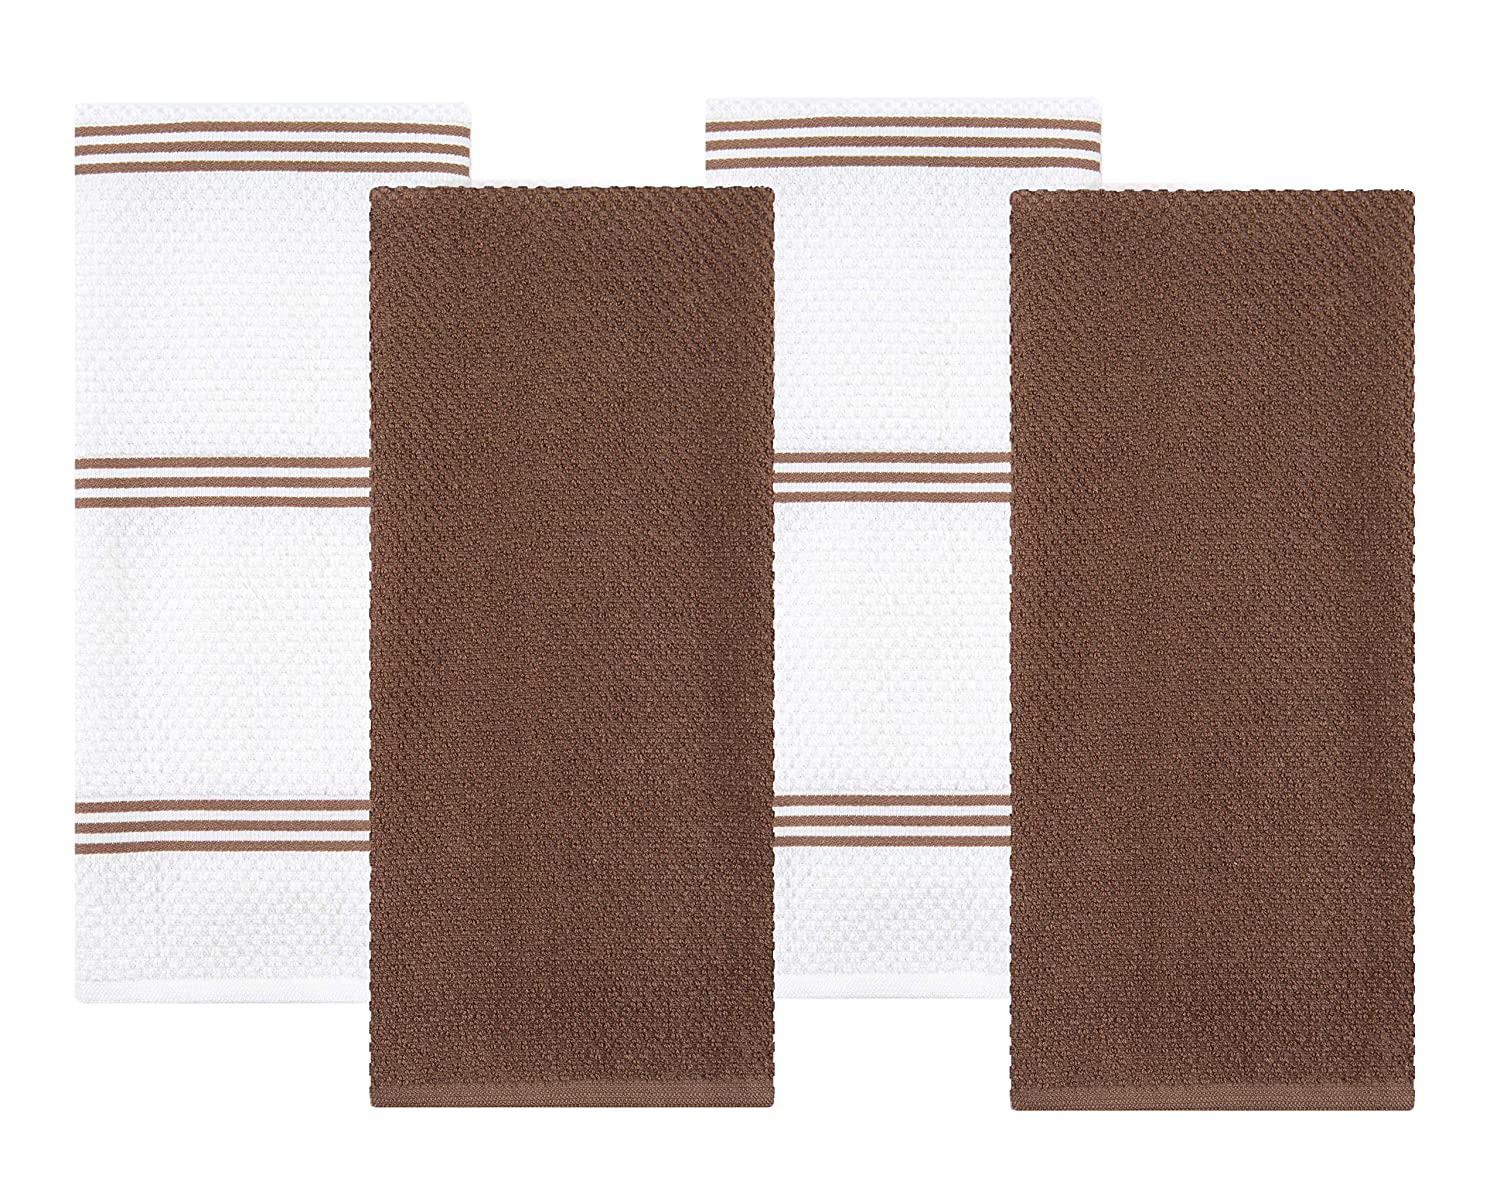 Sticky Toffee Cotton Terry Kitchen Dish Towel, Brown, 4 Pack, 28 in x 16 in